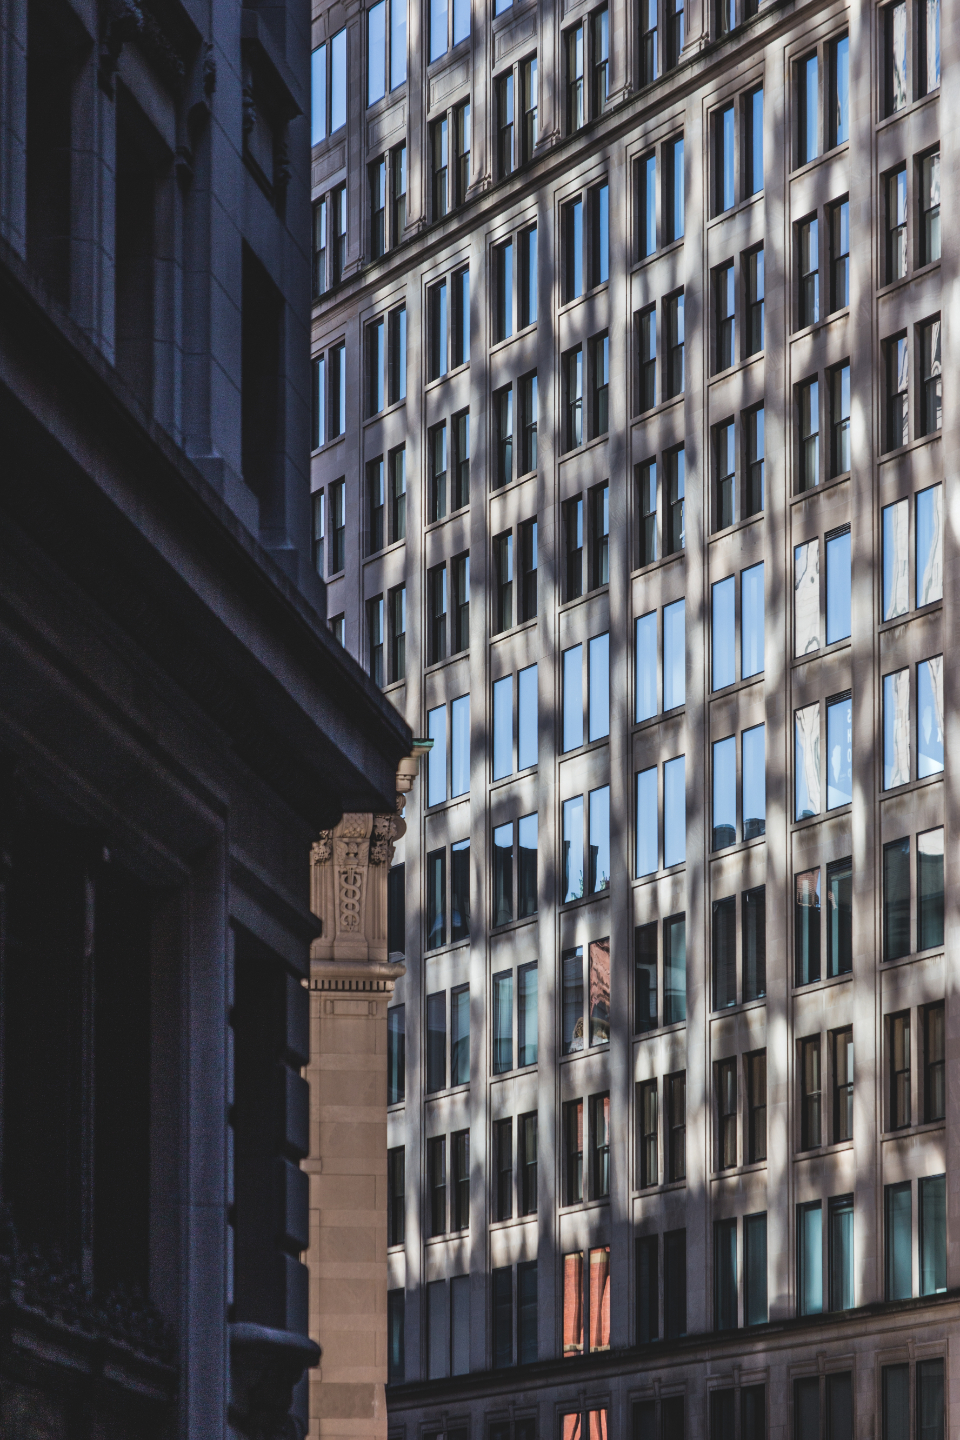 city building pattern abstract structure architecture business windows modern design glass window reflection